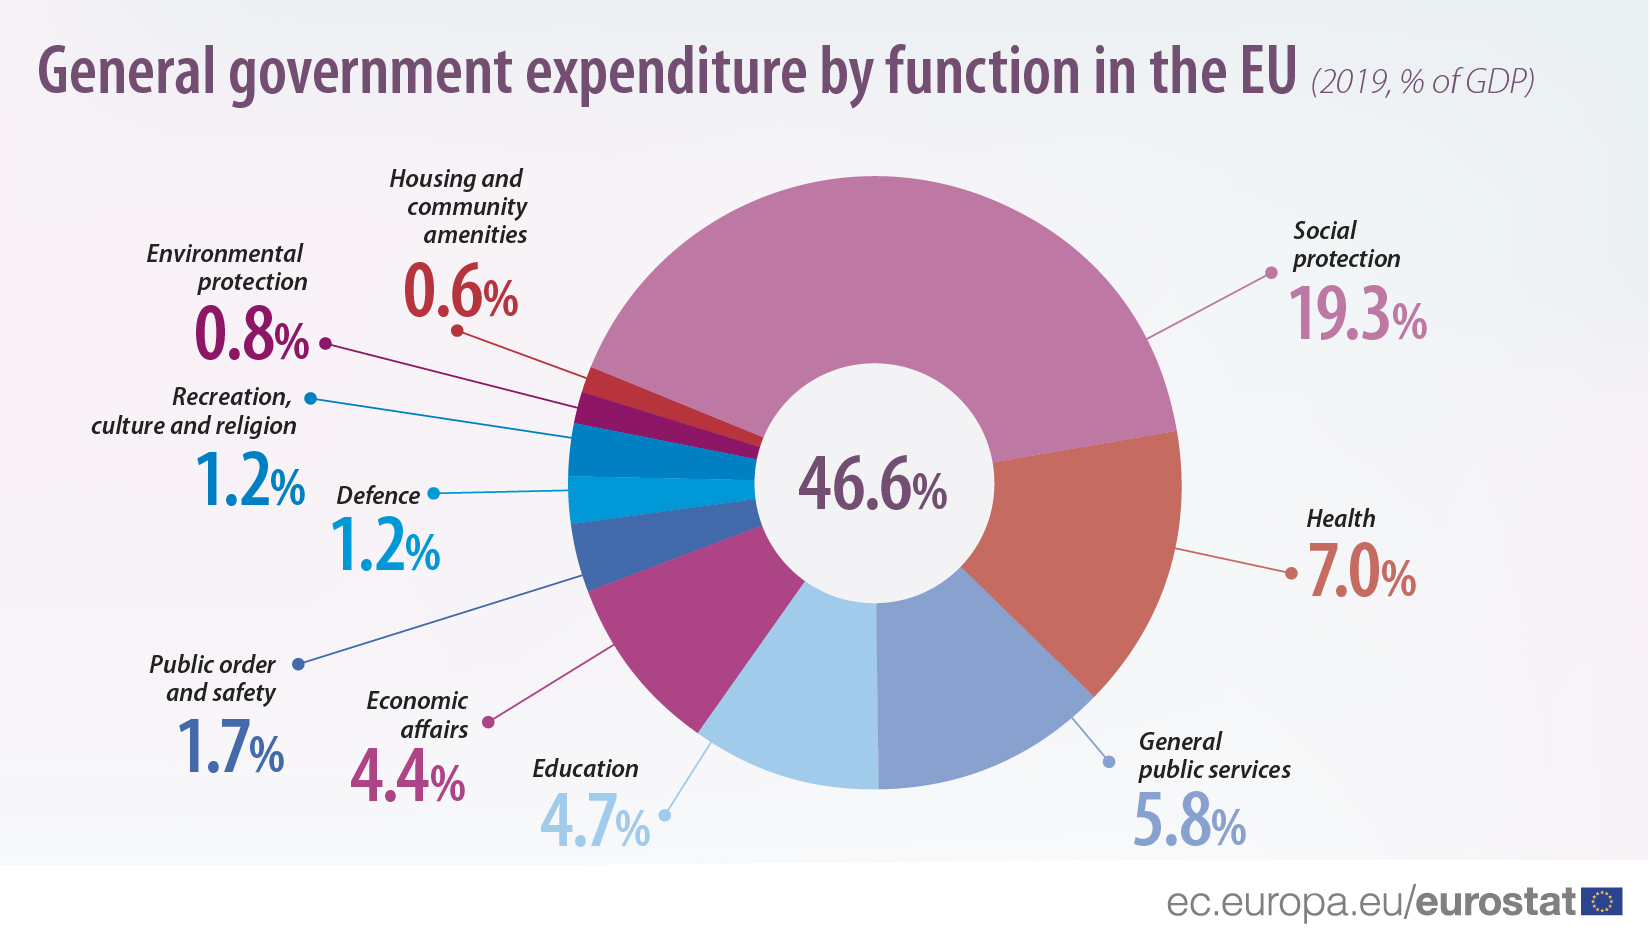 General government expenditure by function, 2019